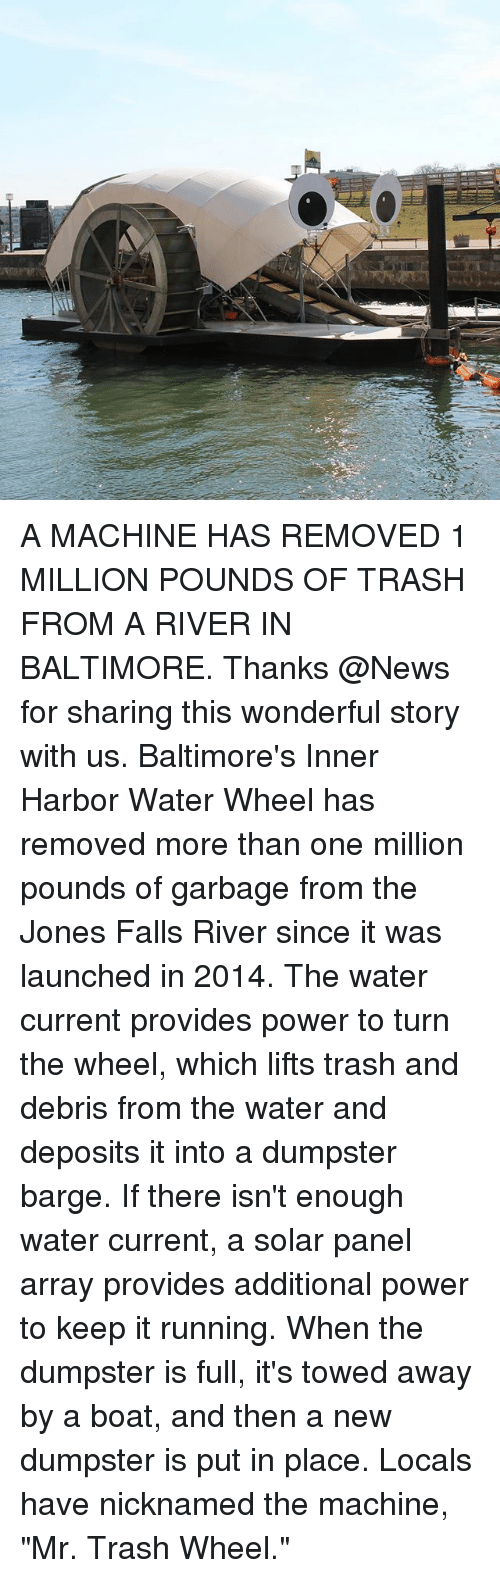 """Dumpstered: A MACHINE HAS REMOVED 1 MILLION POUNDS OF TRASH FROM A RIVER IN BALTIMORE. Thanks @News for sharing this wonderful story with us. Baltimore's Inner Harbor Water Wheel has removed more than one million pounds of garbage from the Jones Falls River since it was launched in 2014. The water current provides power to turn the wheel, which lifts trash and debris from the water and deposits it into a dumpster barge. If there isn't enough water current, a solar panel array provides additional power to keep it running. When the dumpster is full, it's towed away by a boat, and then a new dumpster is put in place. Locals have nicknamed the machine, """"Mr. Trash Wheel."""""""